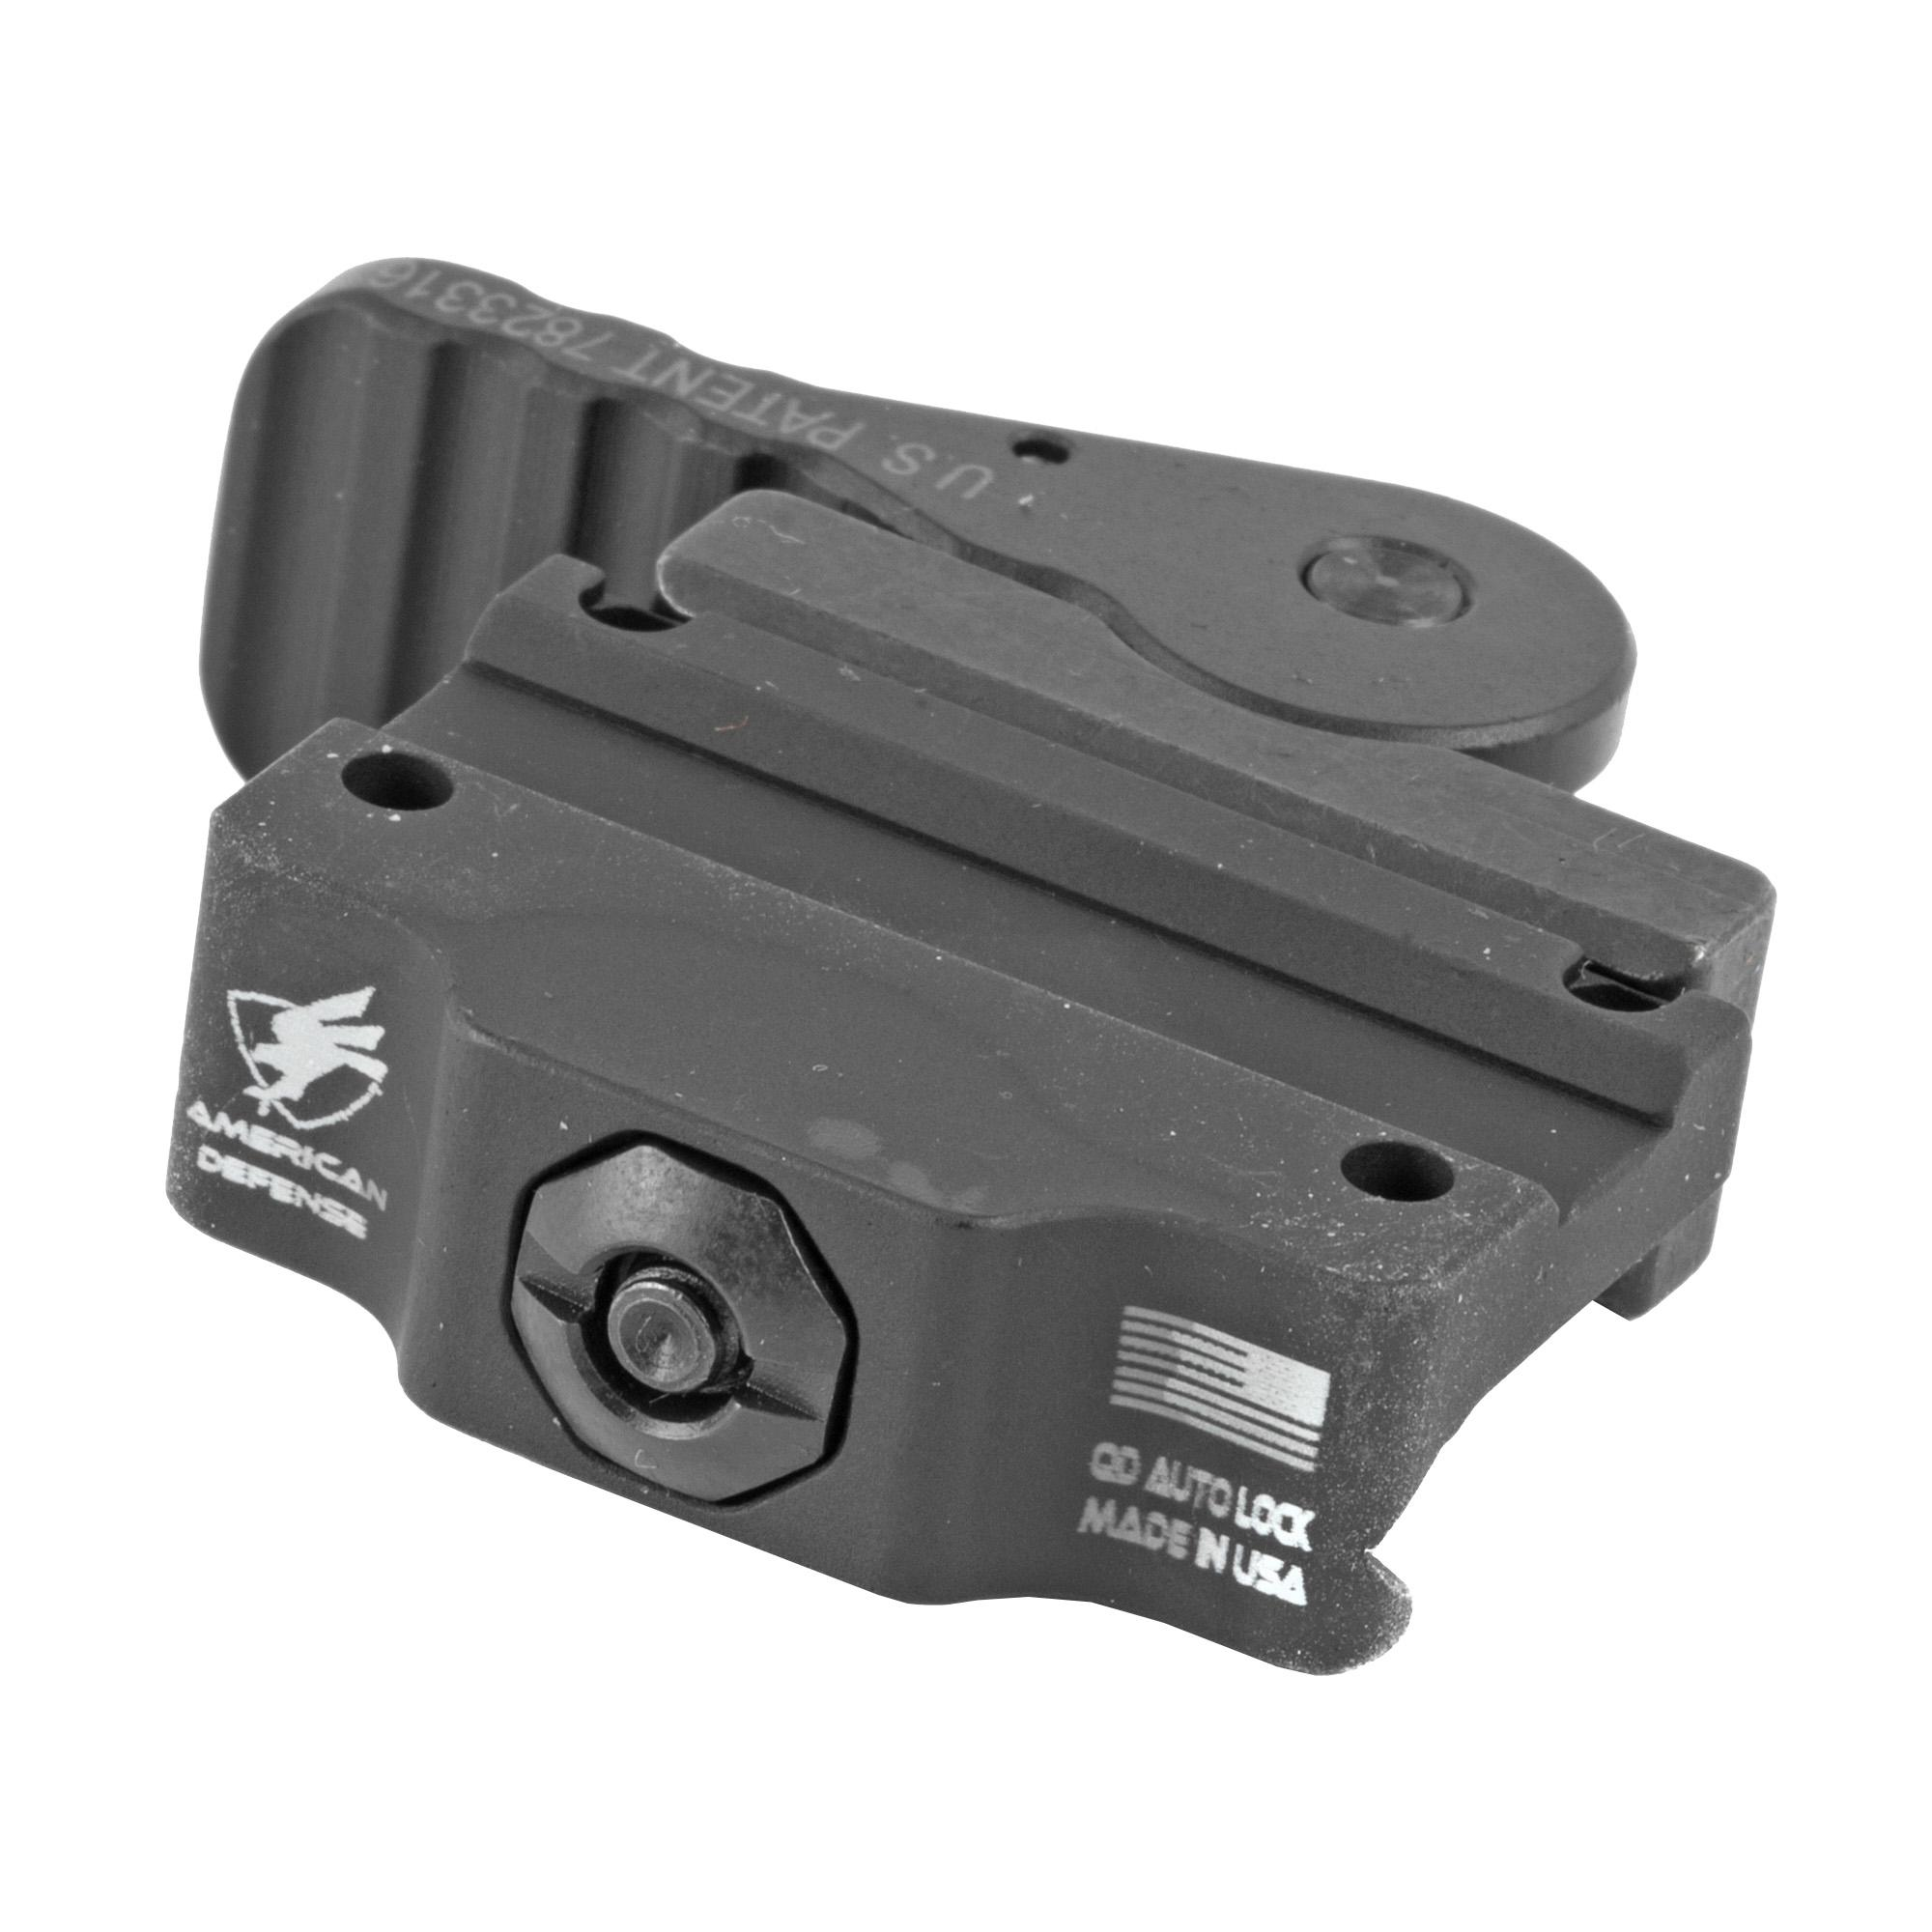 American Defense Mfg. Trijicon Mro Low Mount Tactical AD-MRO-L TAC R Photo 3